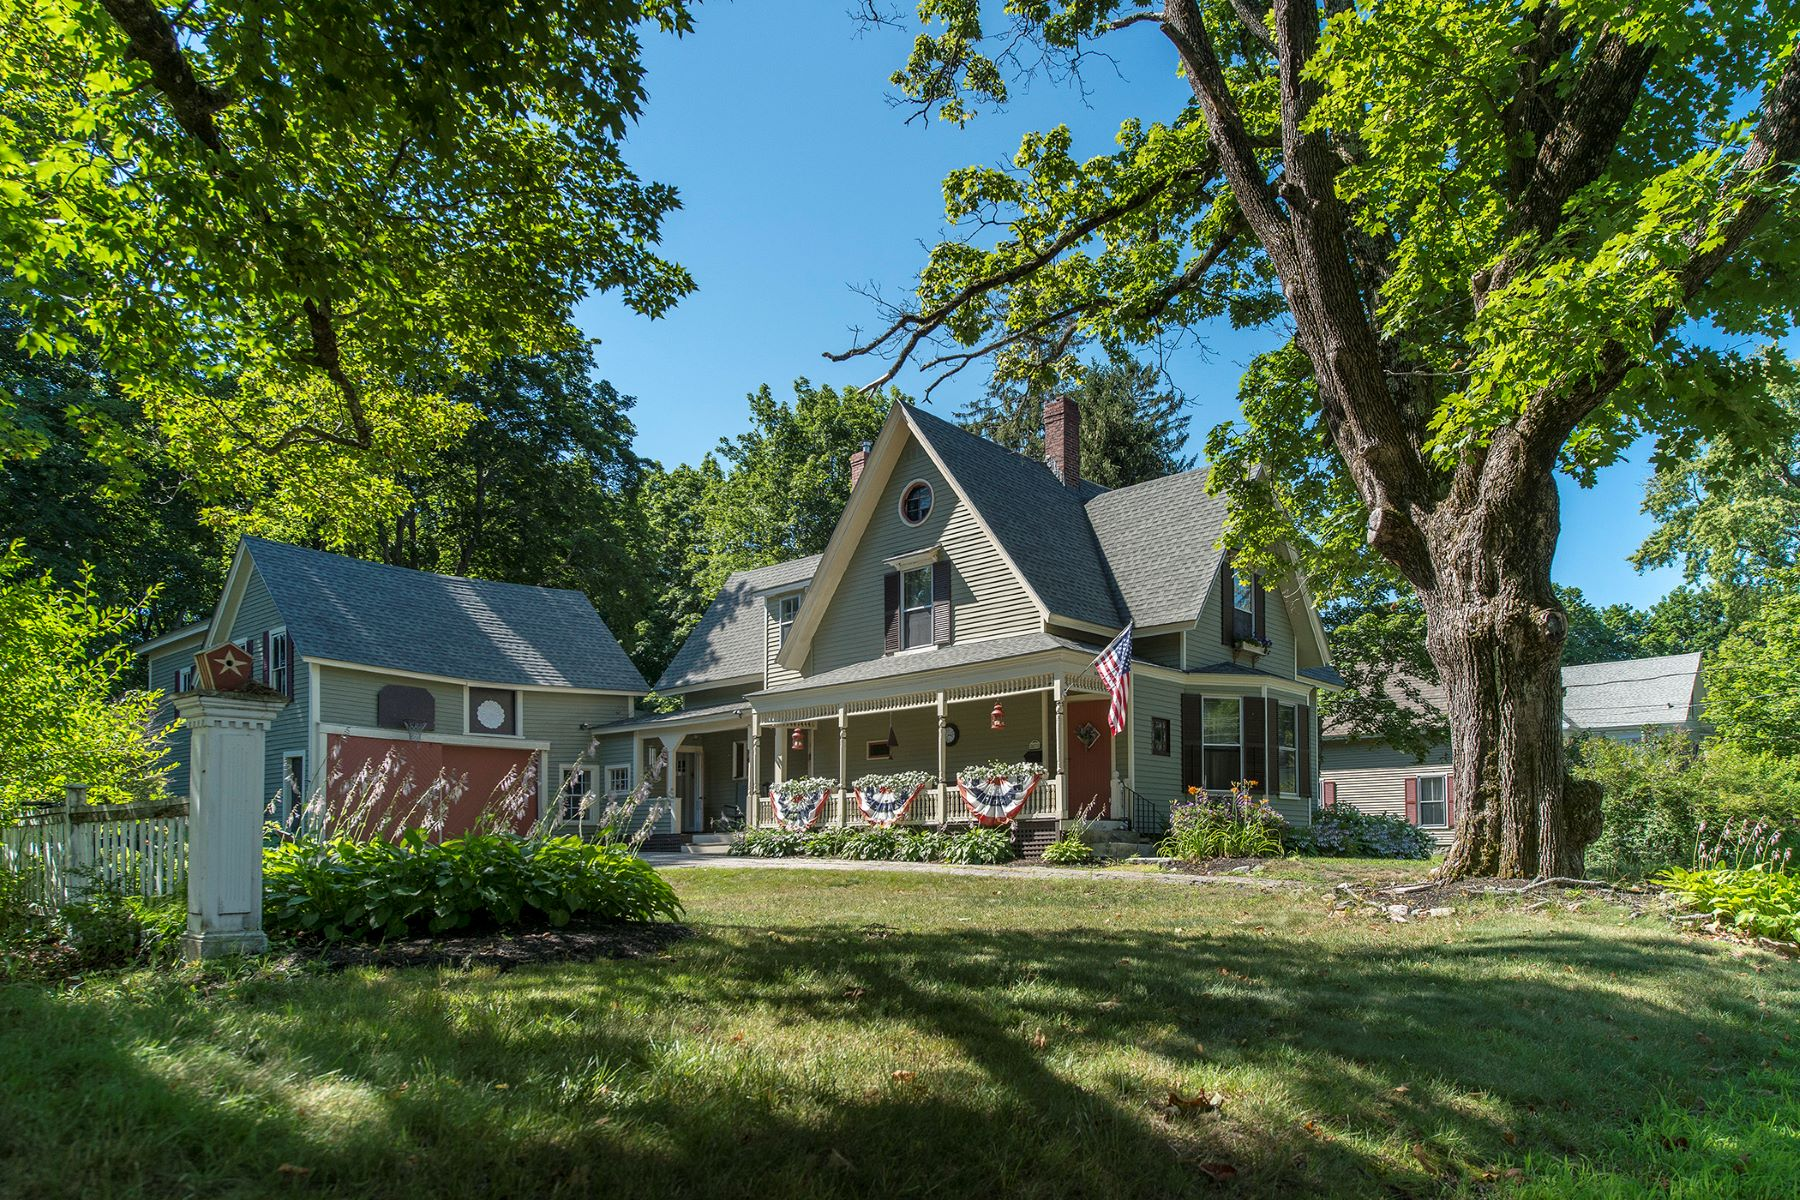 Single Family Home for Sale at 30 Park Street Kennebunk, Maine 04043 United States